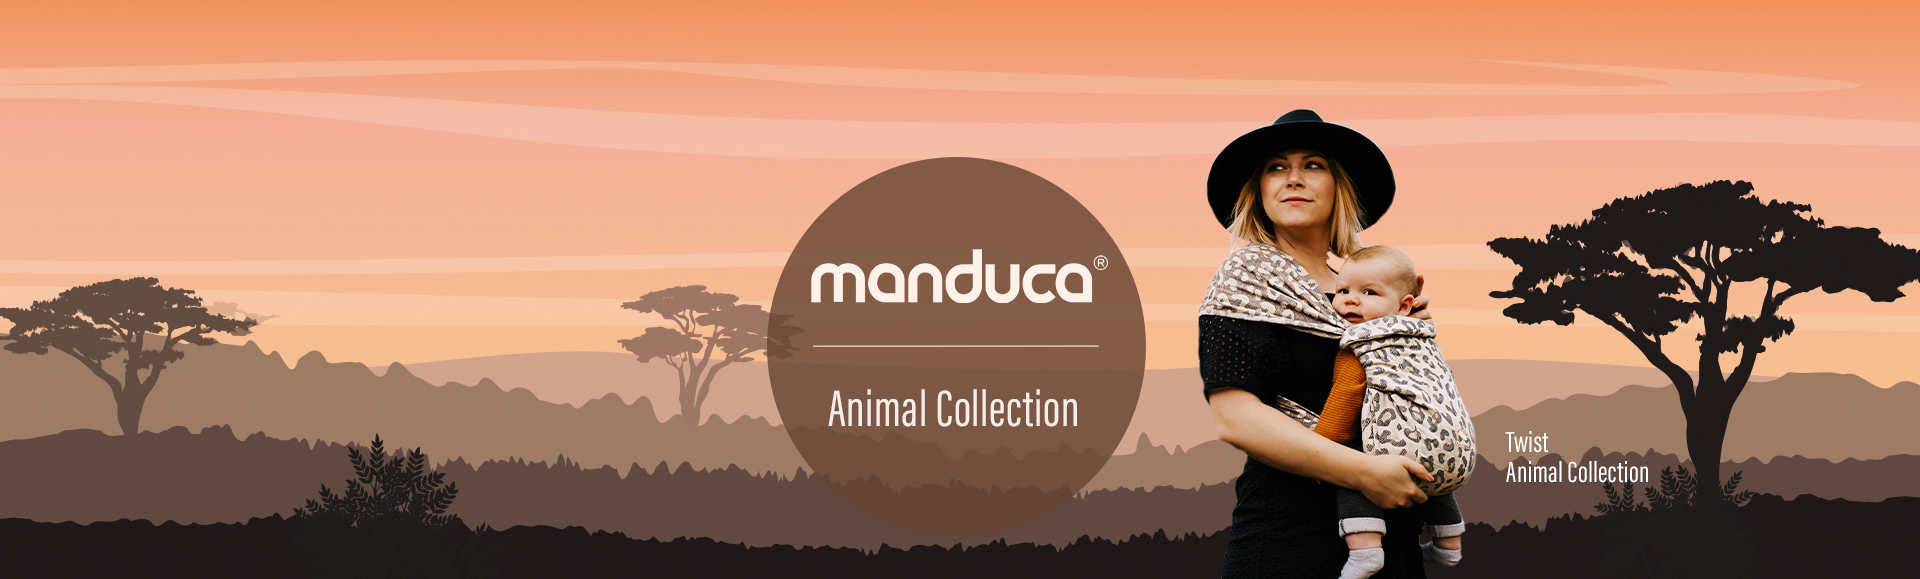 manduca Animal Collection